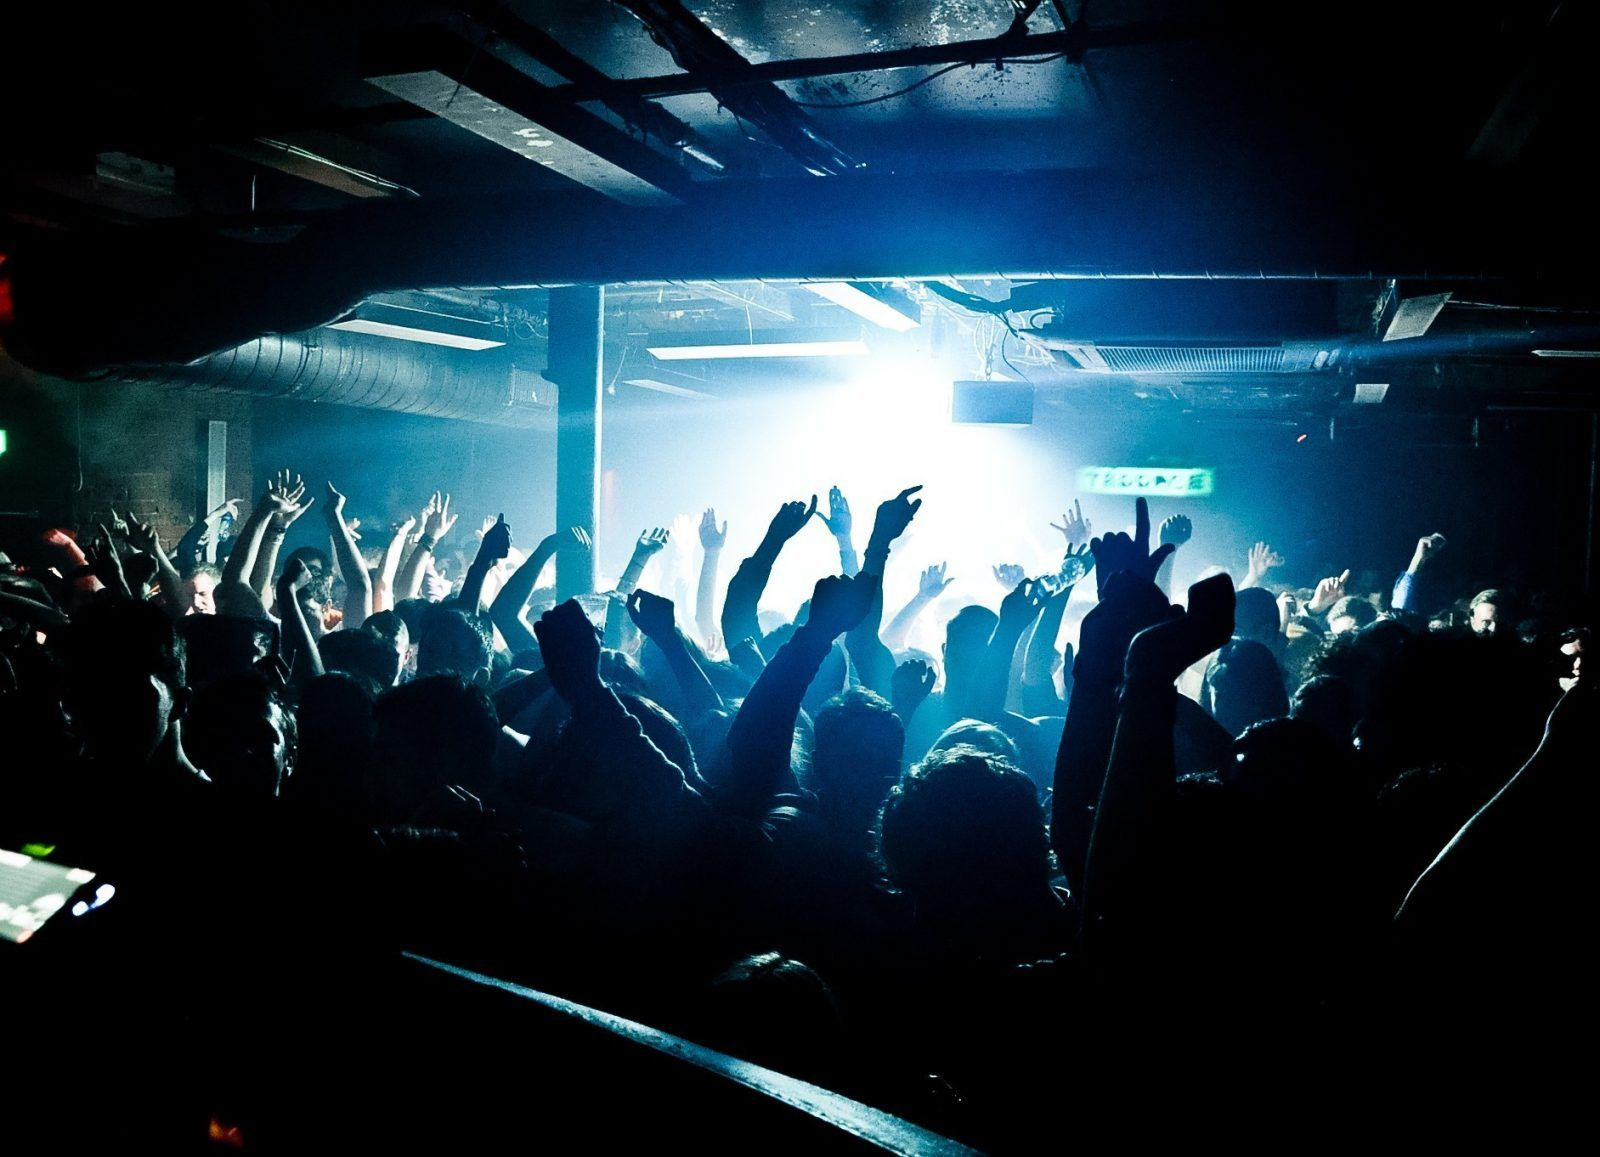 sankeys-crowd-2.jpg